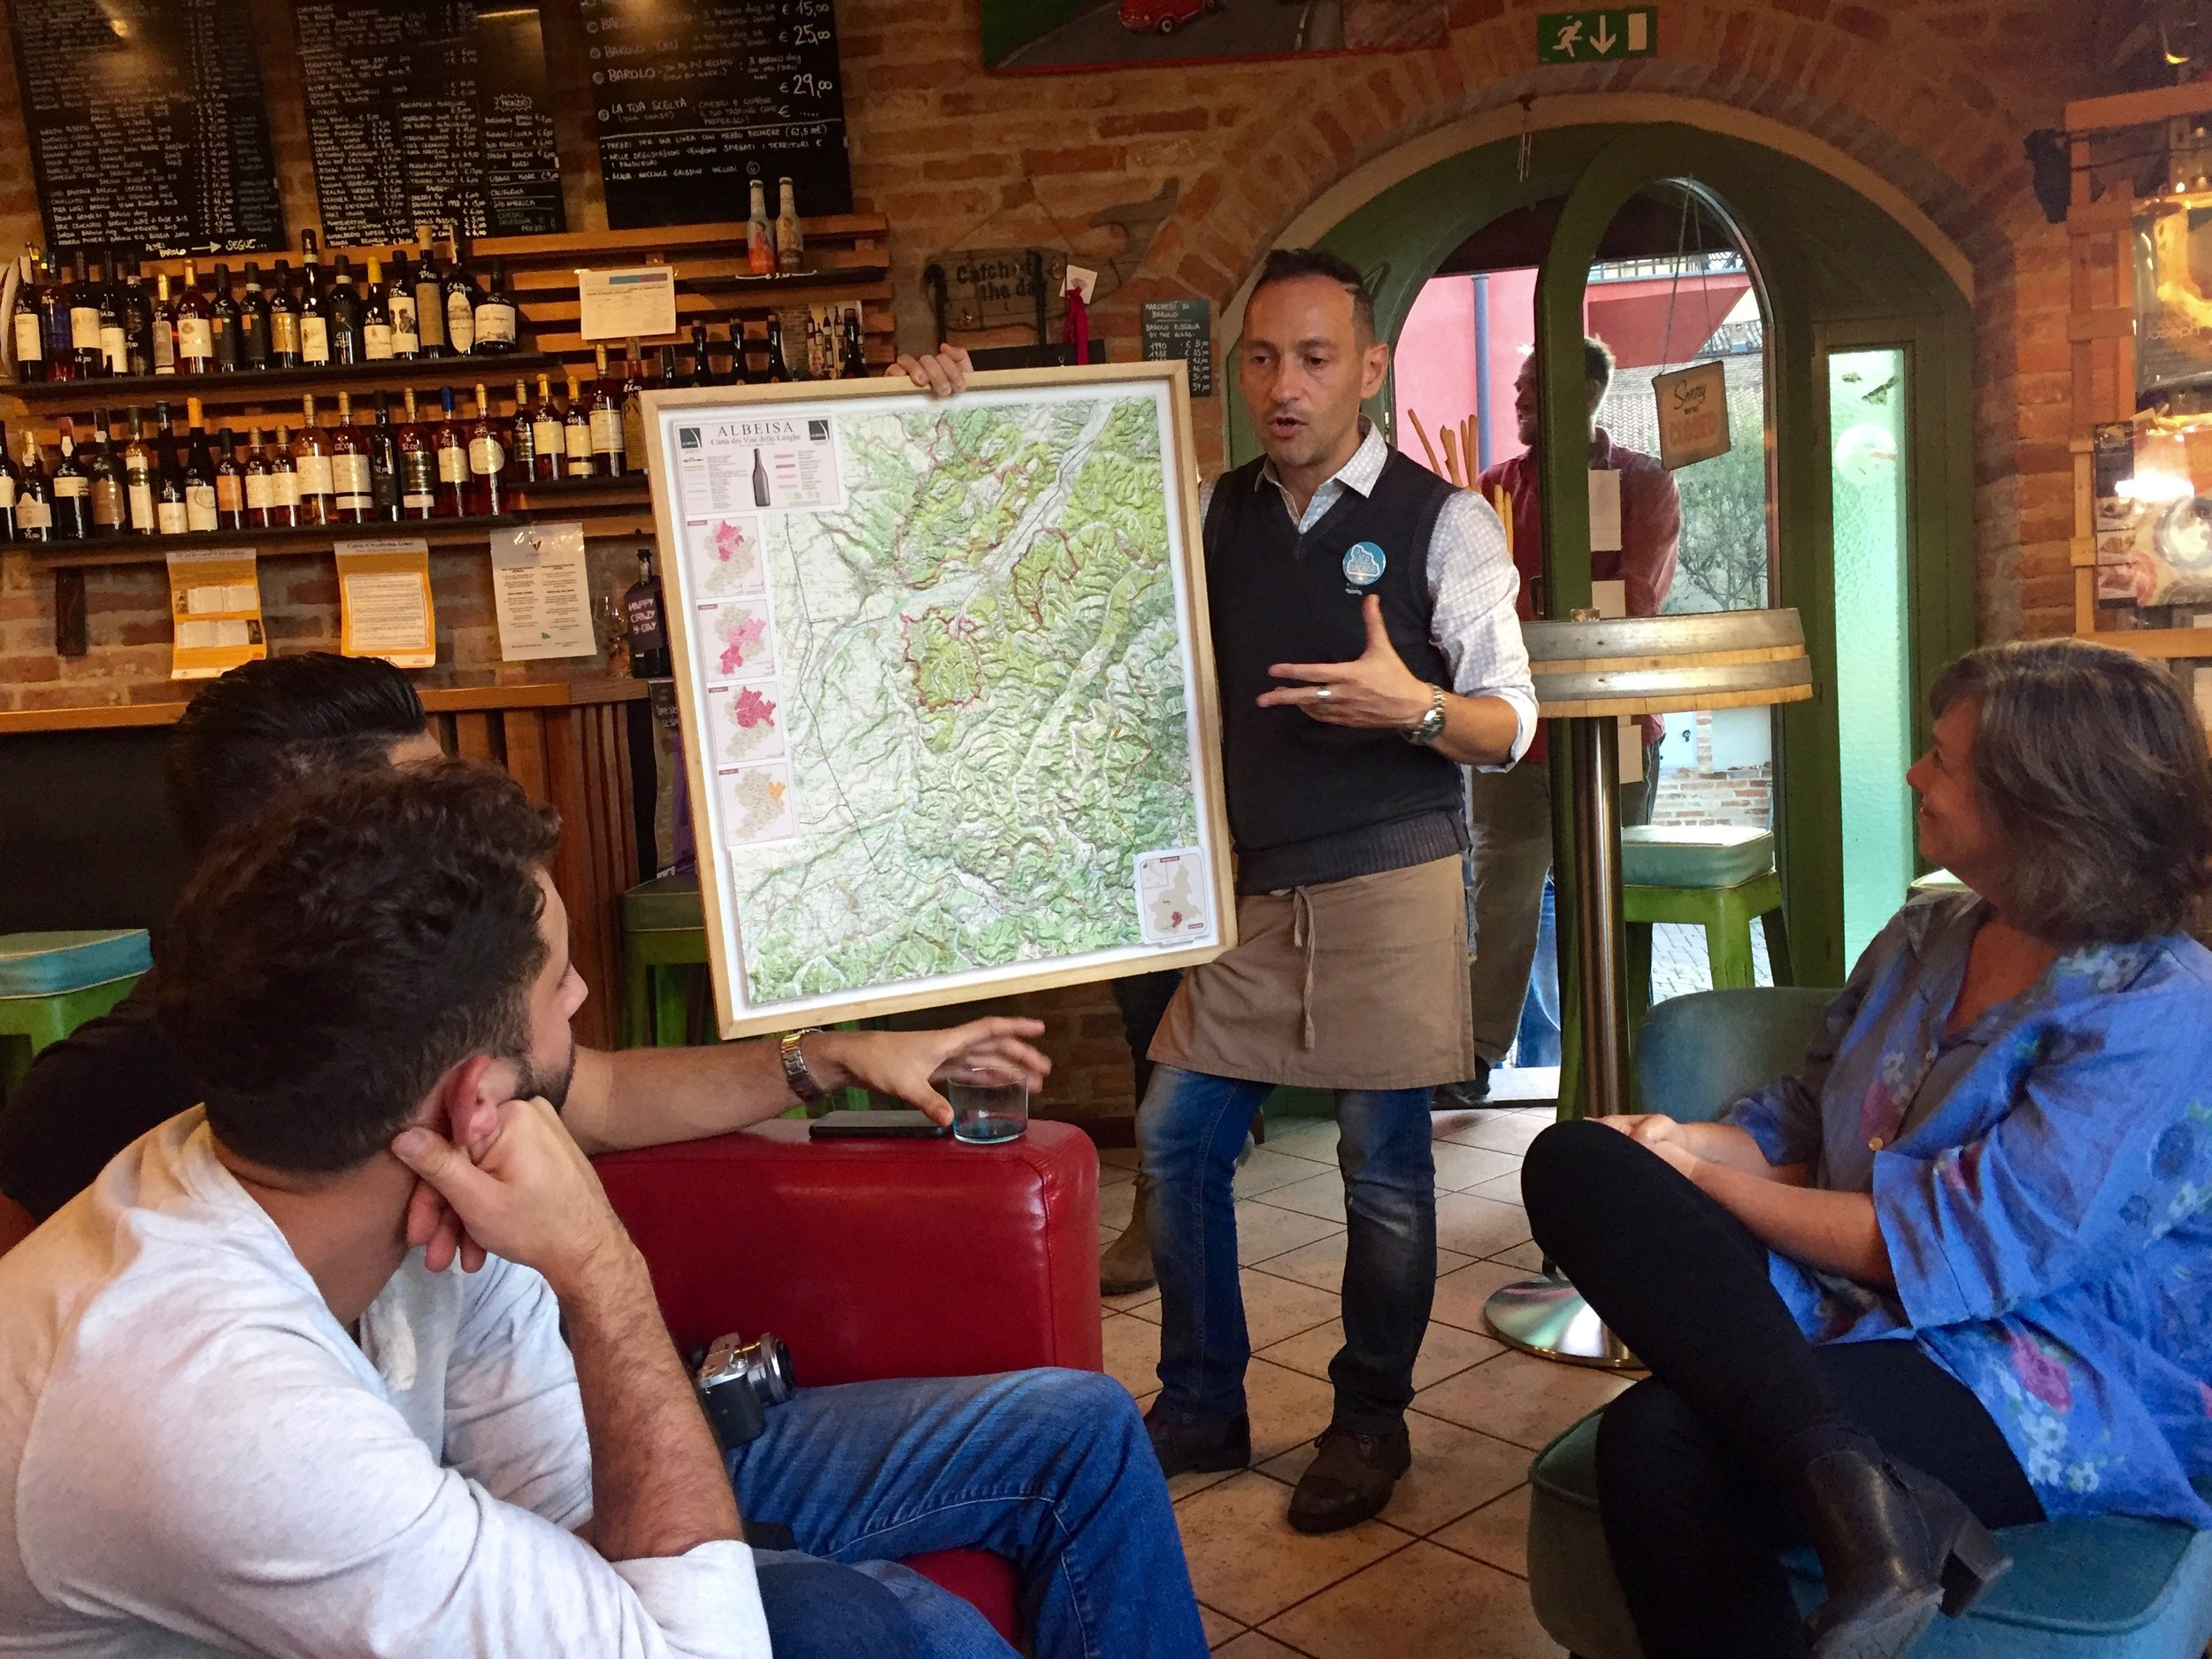 Stefano offers a wealth of knowledge about Barolo wines